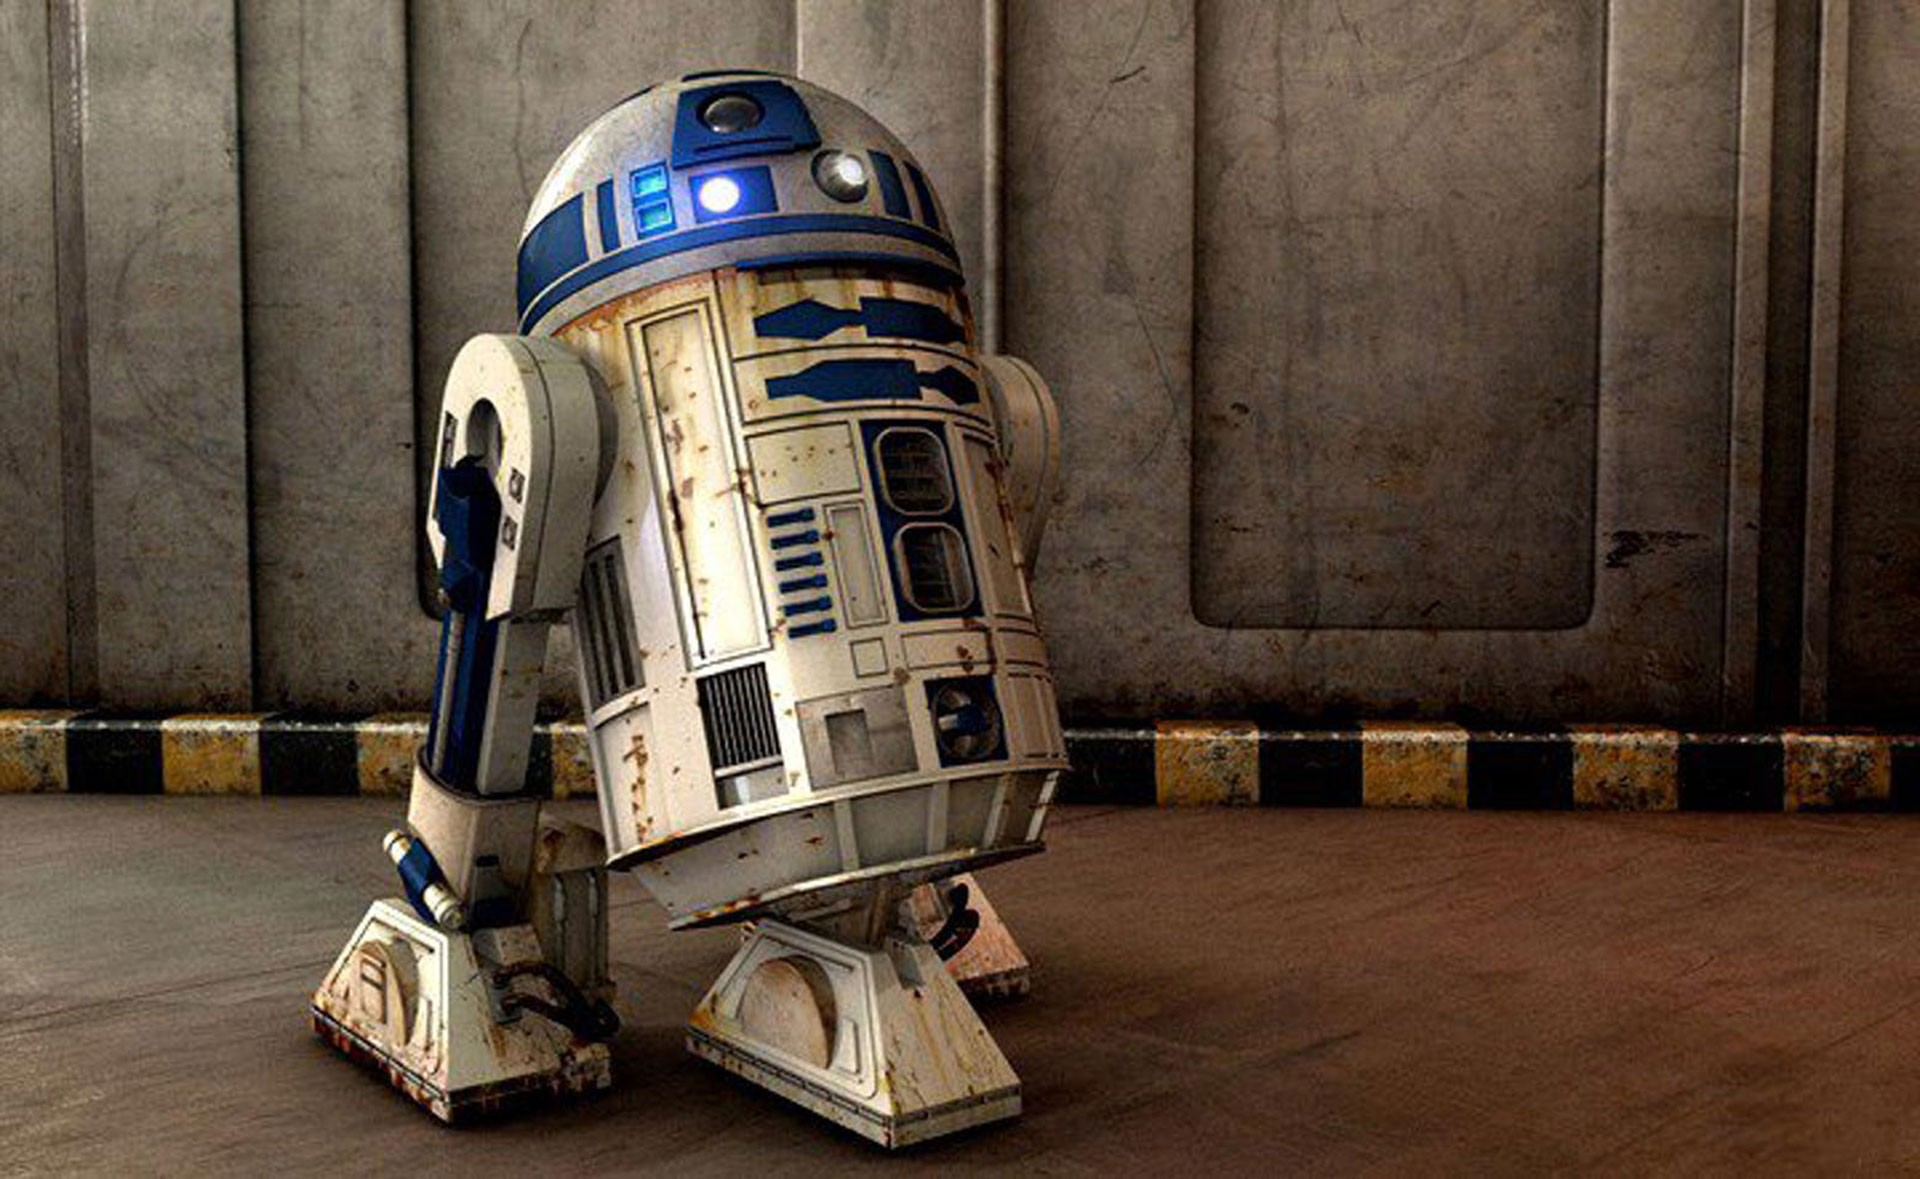 R2D2 Wallpaper 1 Download Free HD Backgrounds For Desktop And